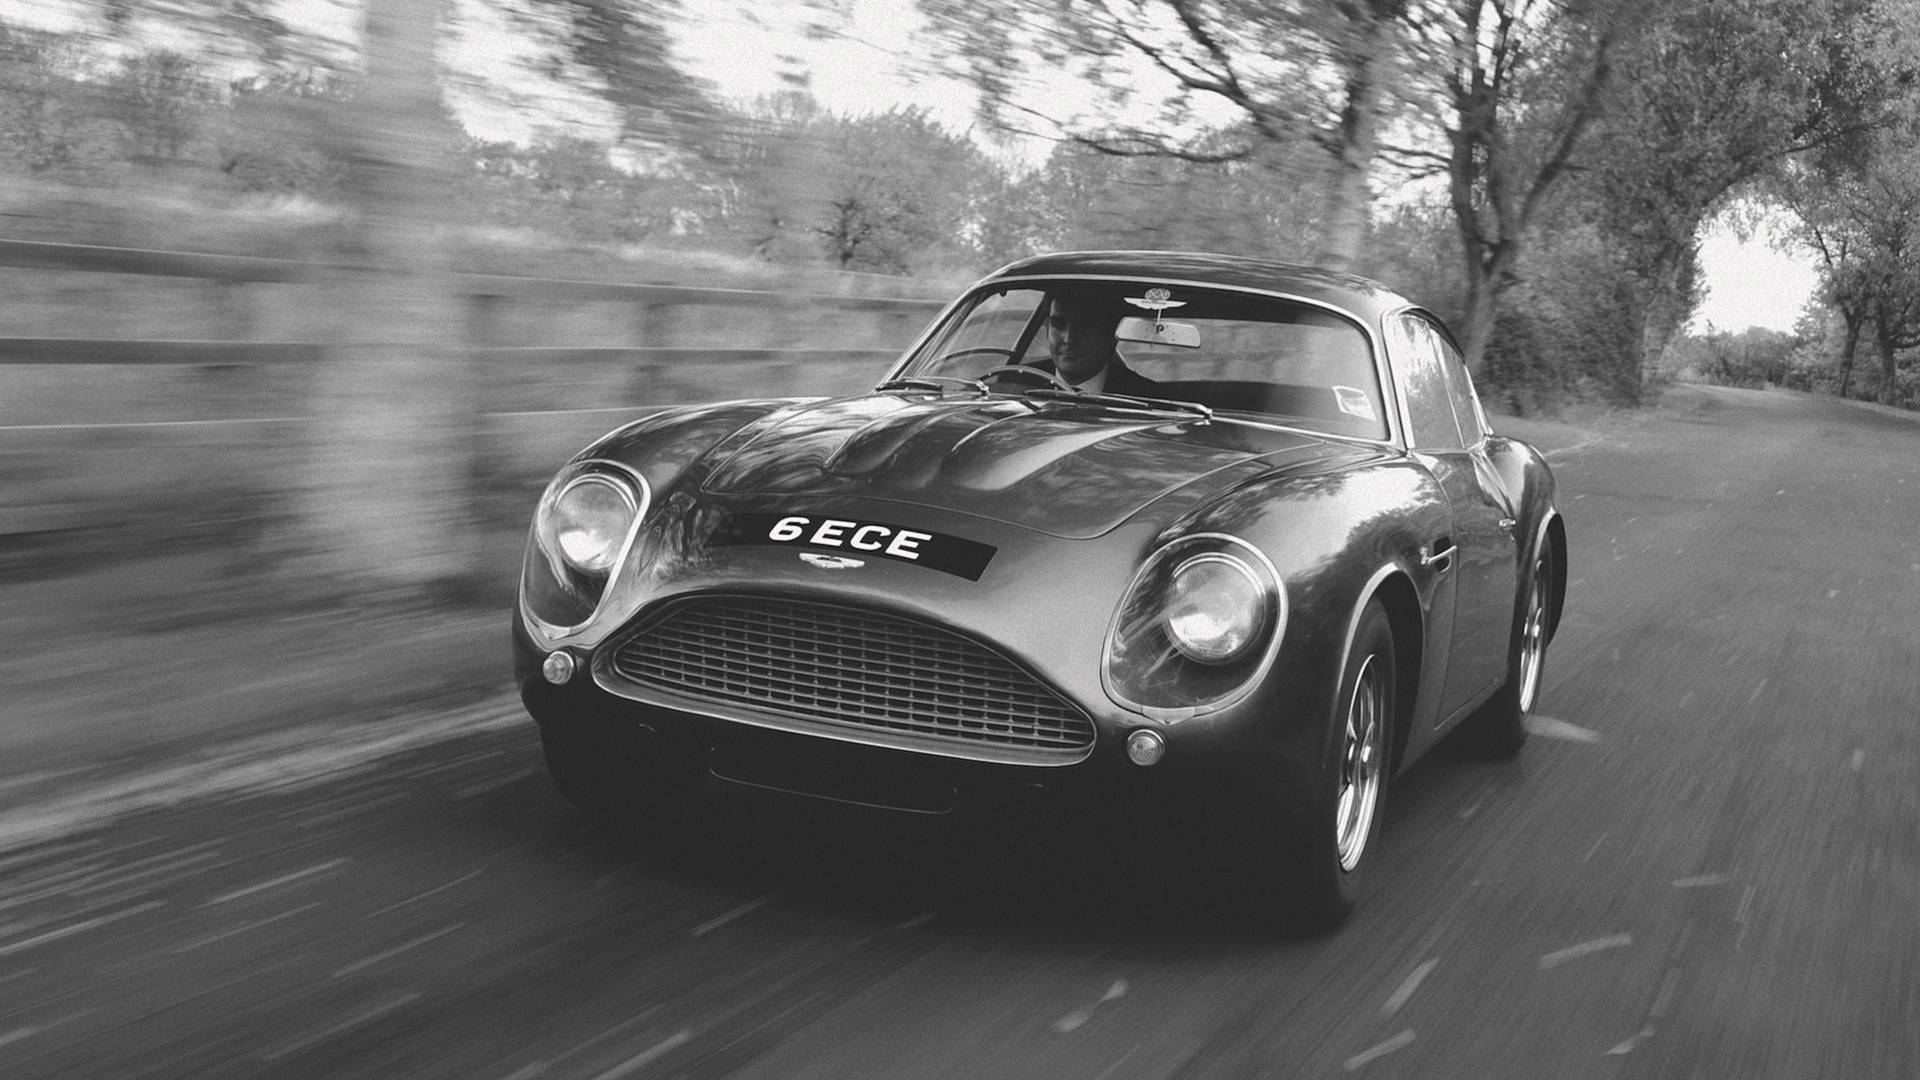 For $8 million, Aston Martin will sell you a pair of special edition centenary Zagatos